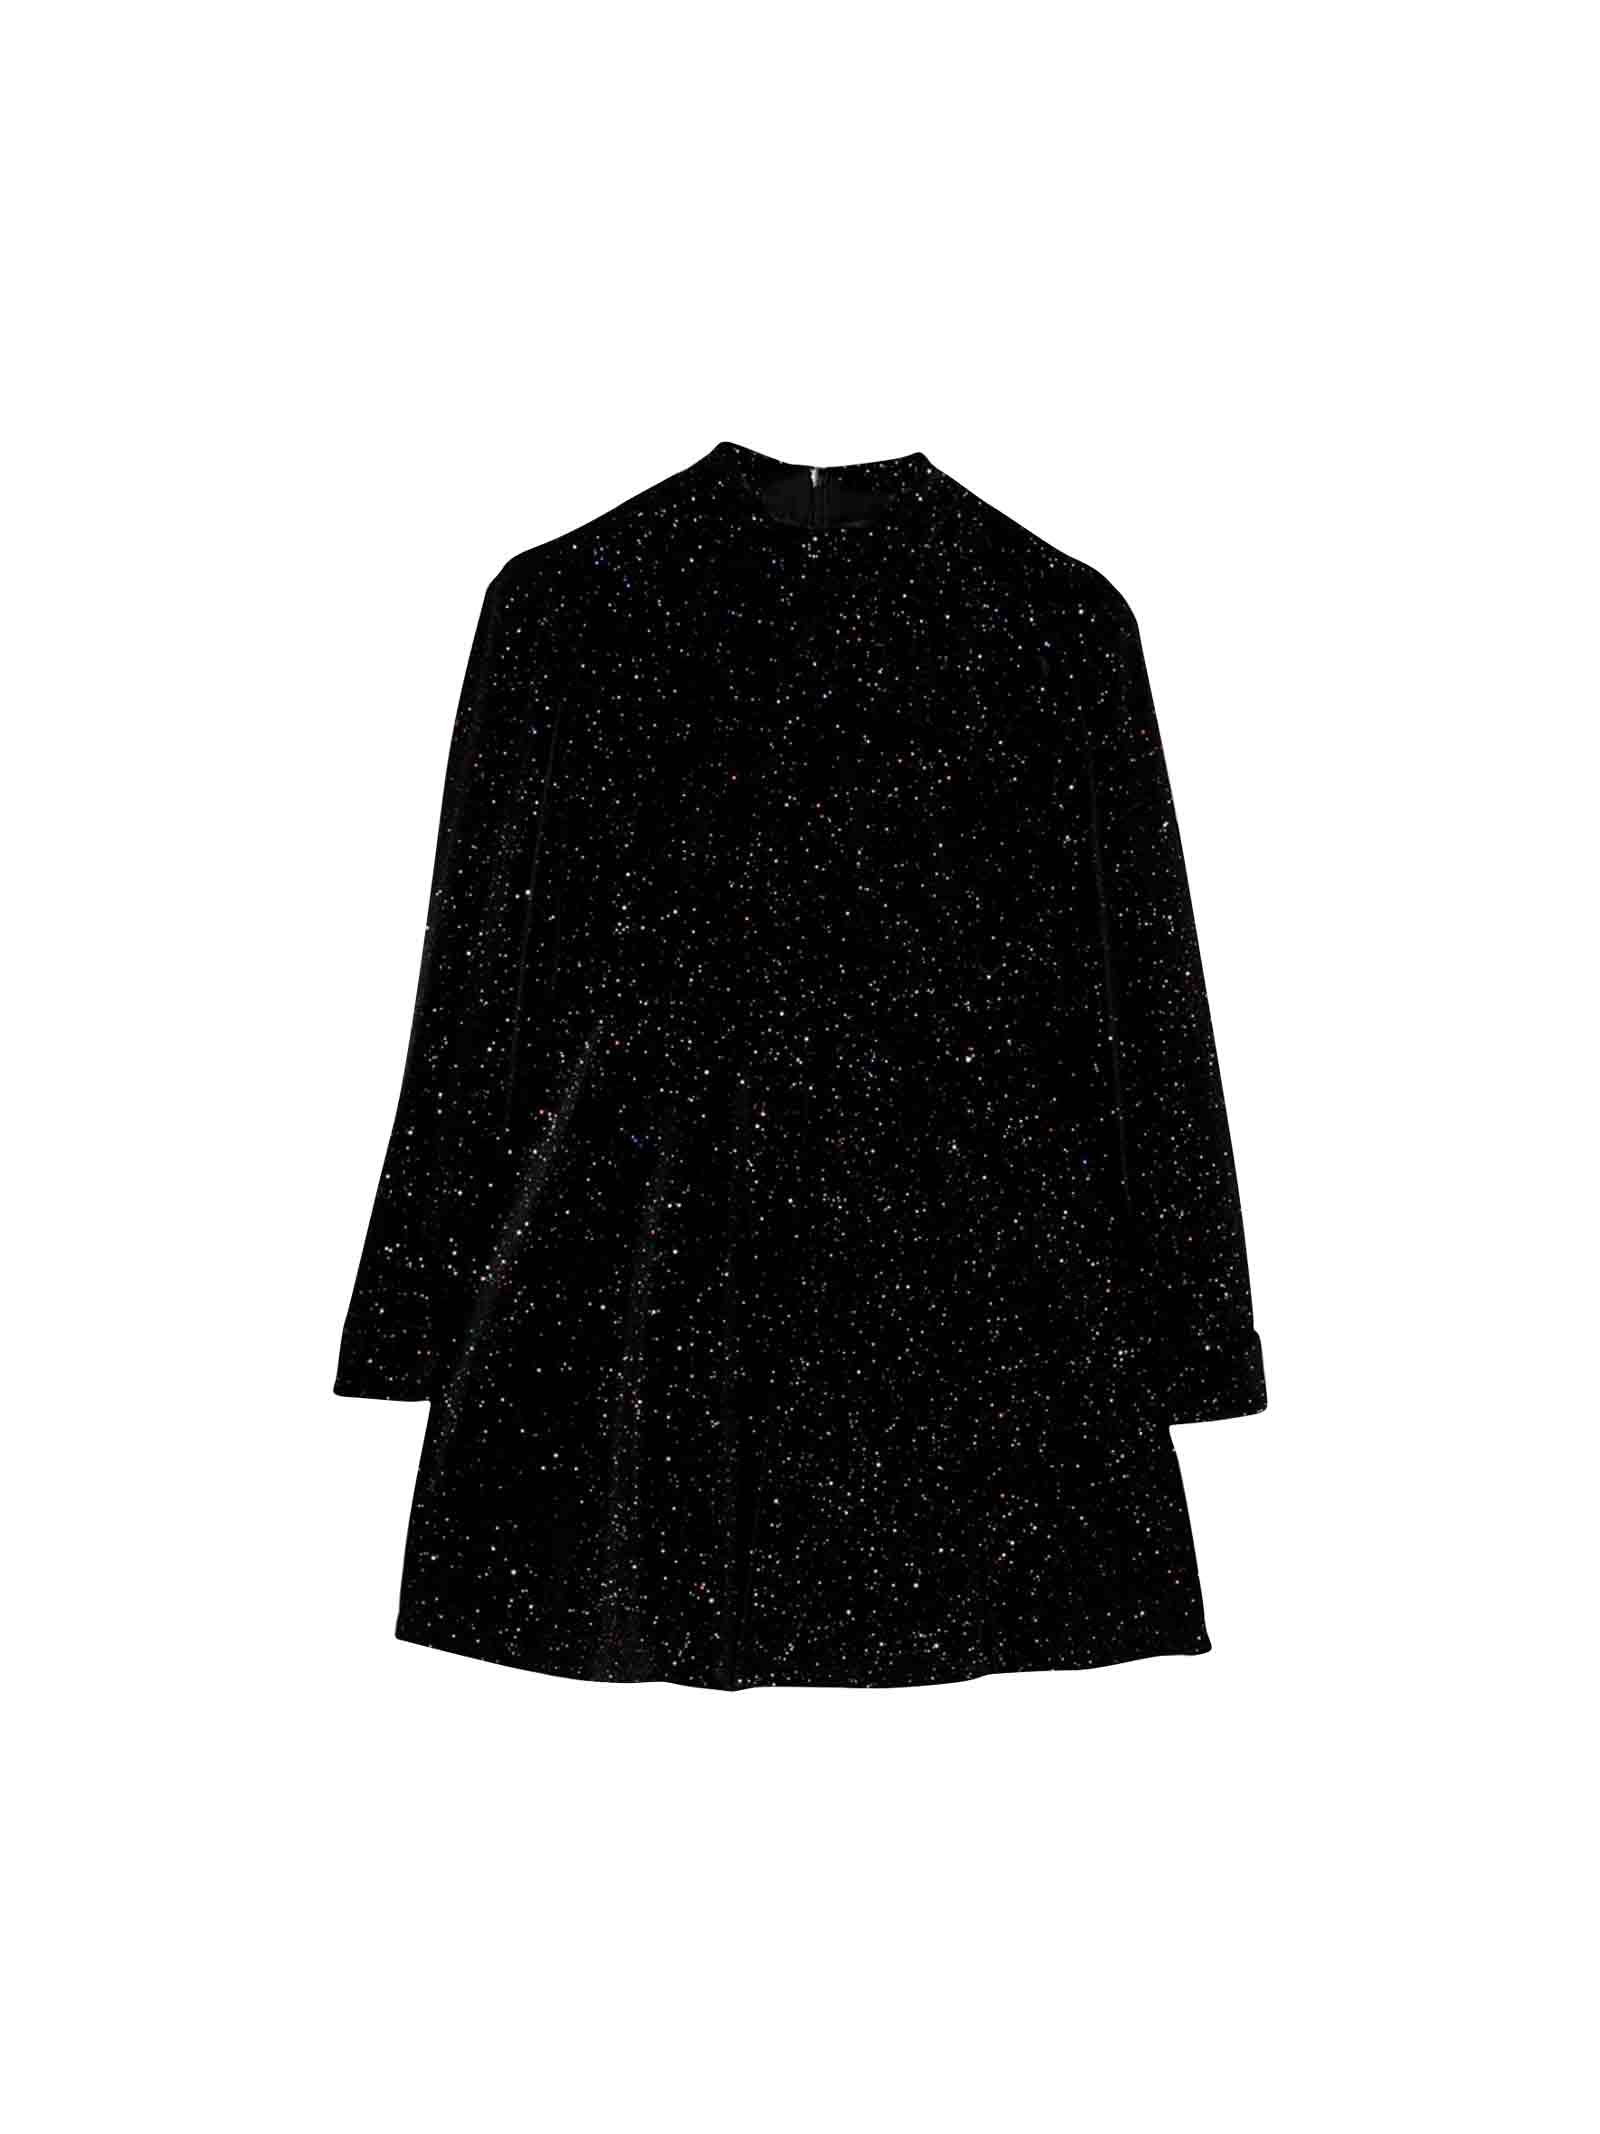 Philosophy di Lorenzo Serafini Kids Black Glittery Dress